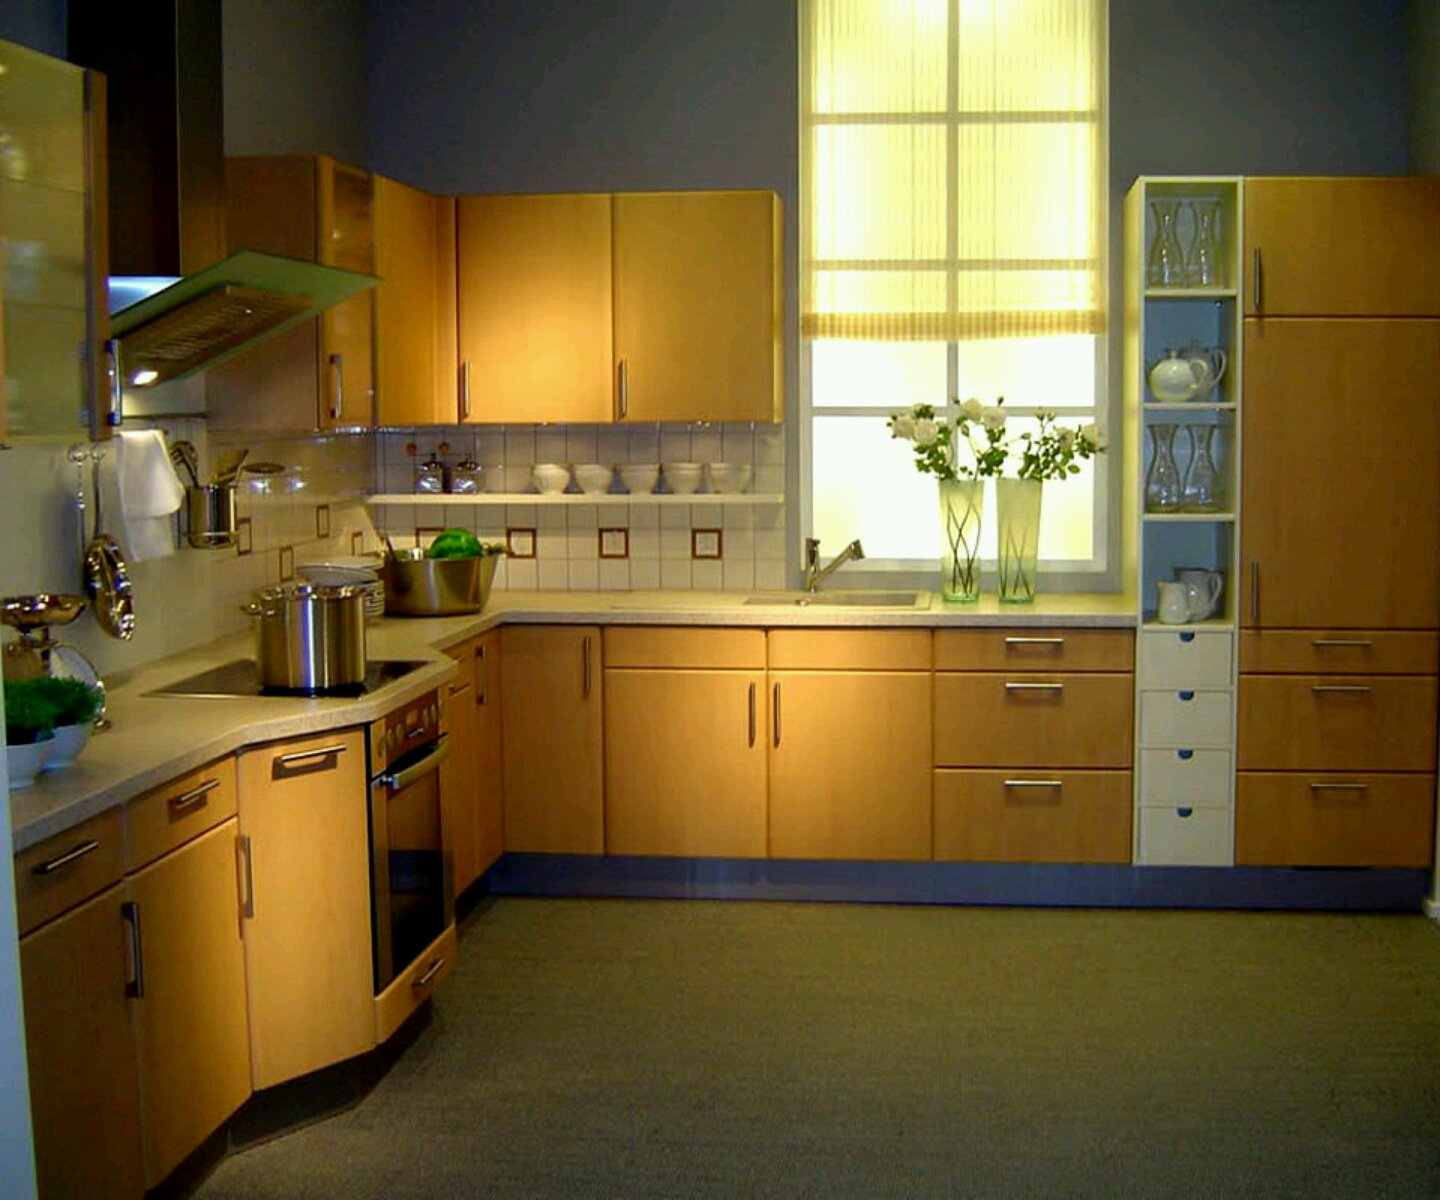 Modern Furniture Small Kitchen Decorating Design Ideas 2011: New Home Designs Latest.: Modern Kitchen Cabinets Designs